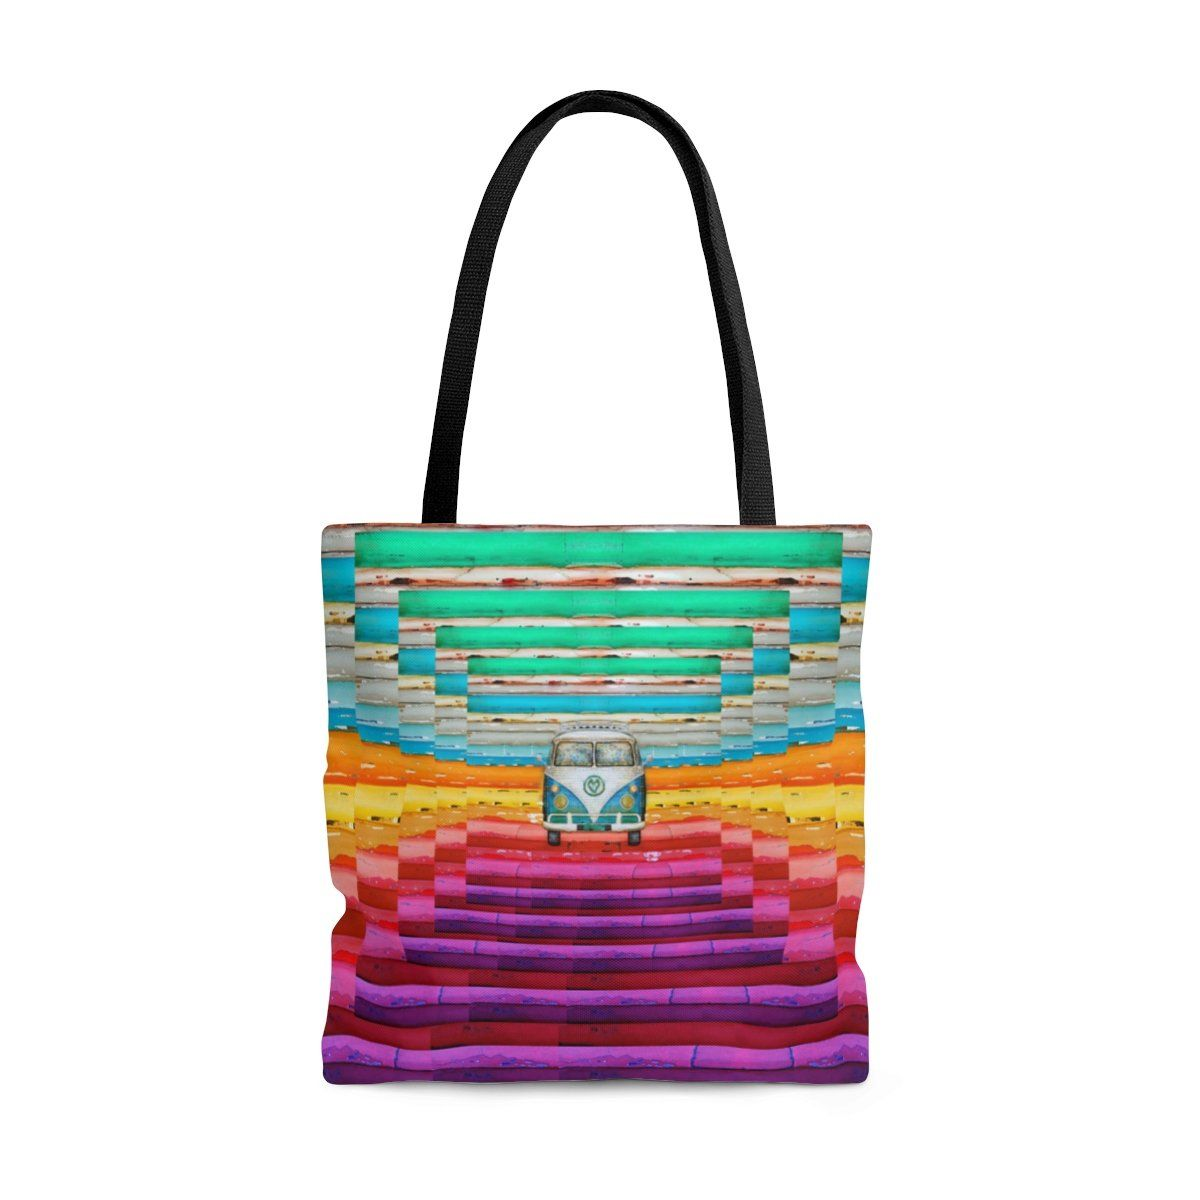 I Love Hippies Cotton Tote Bag